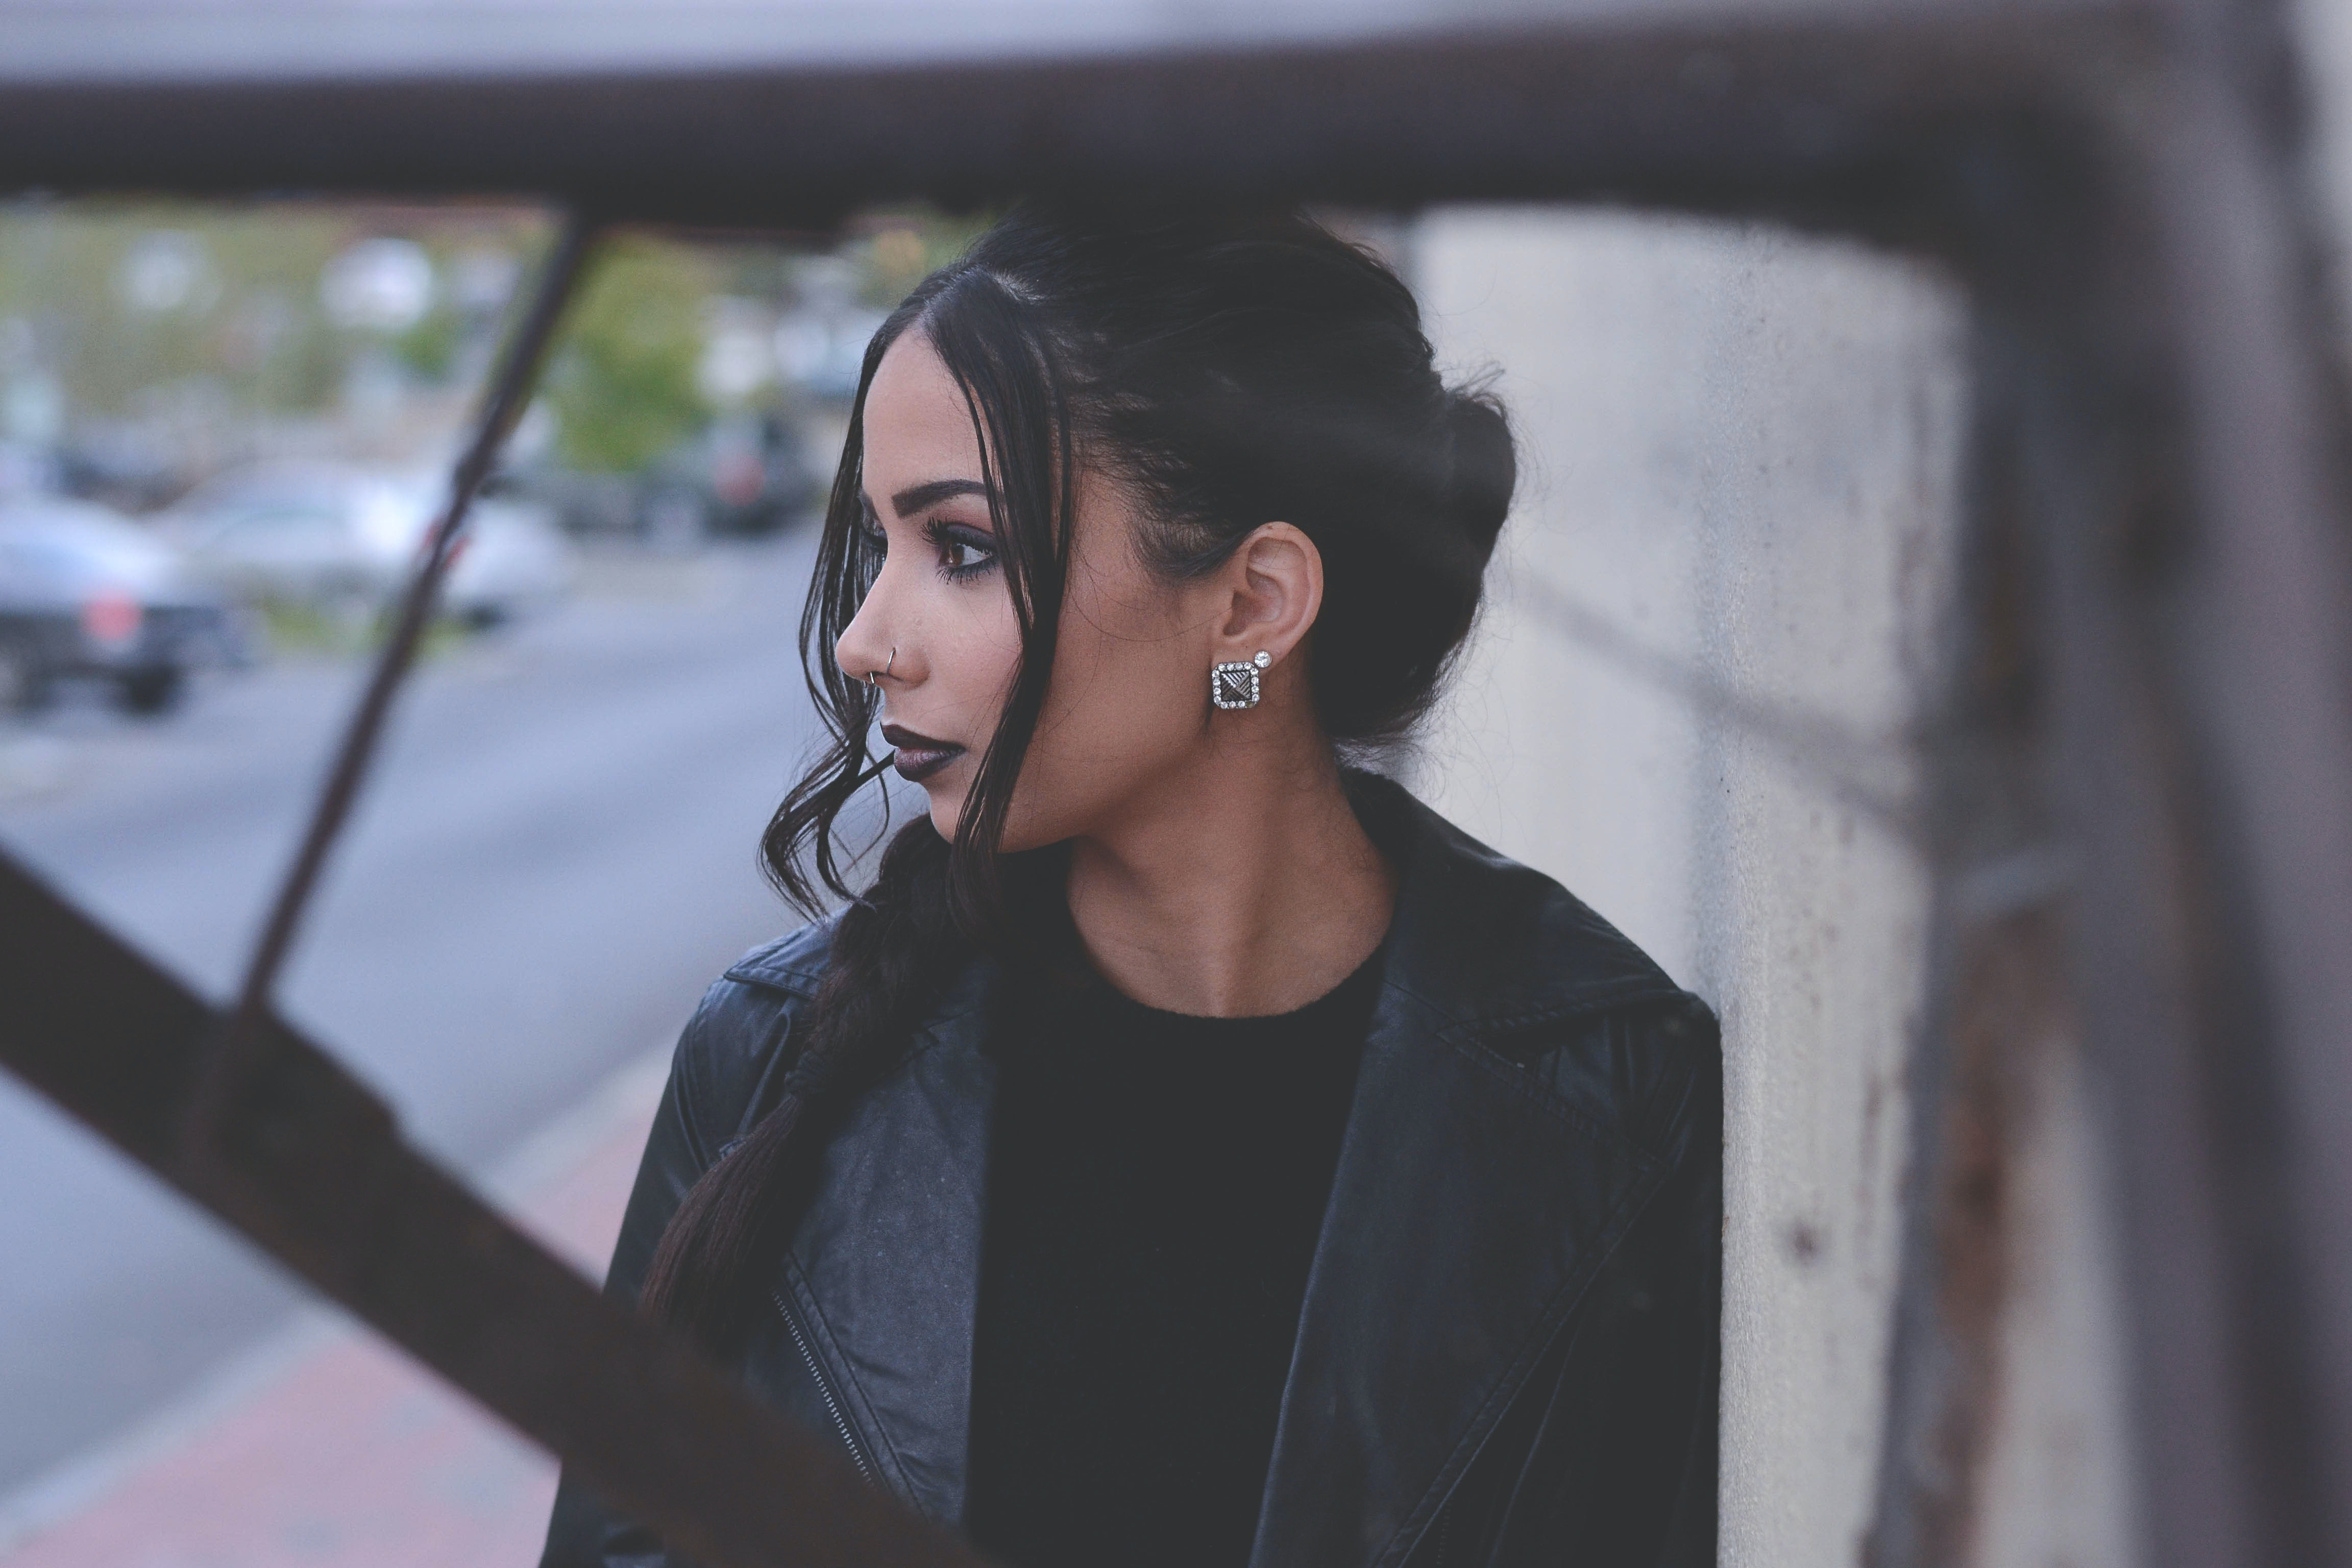 Fashionable woman with dark makeup and hair leaning against a wall